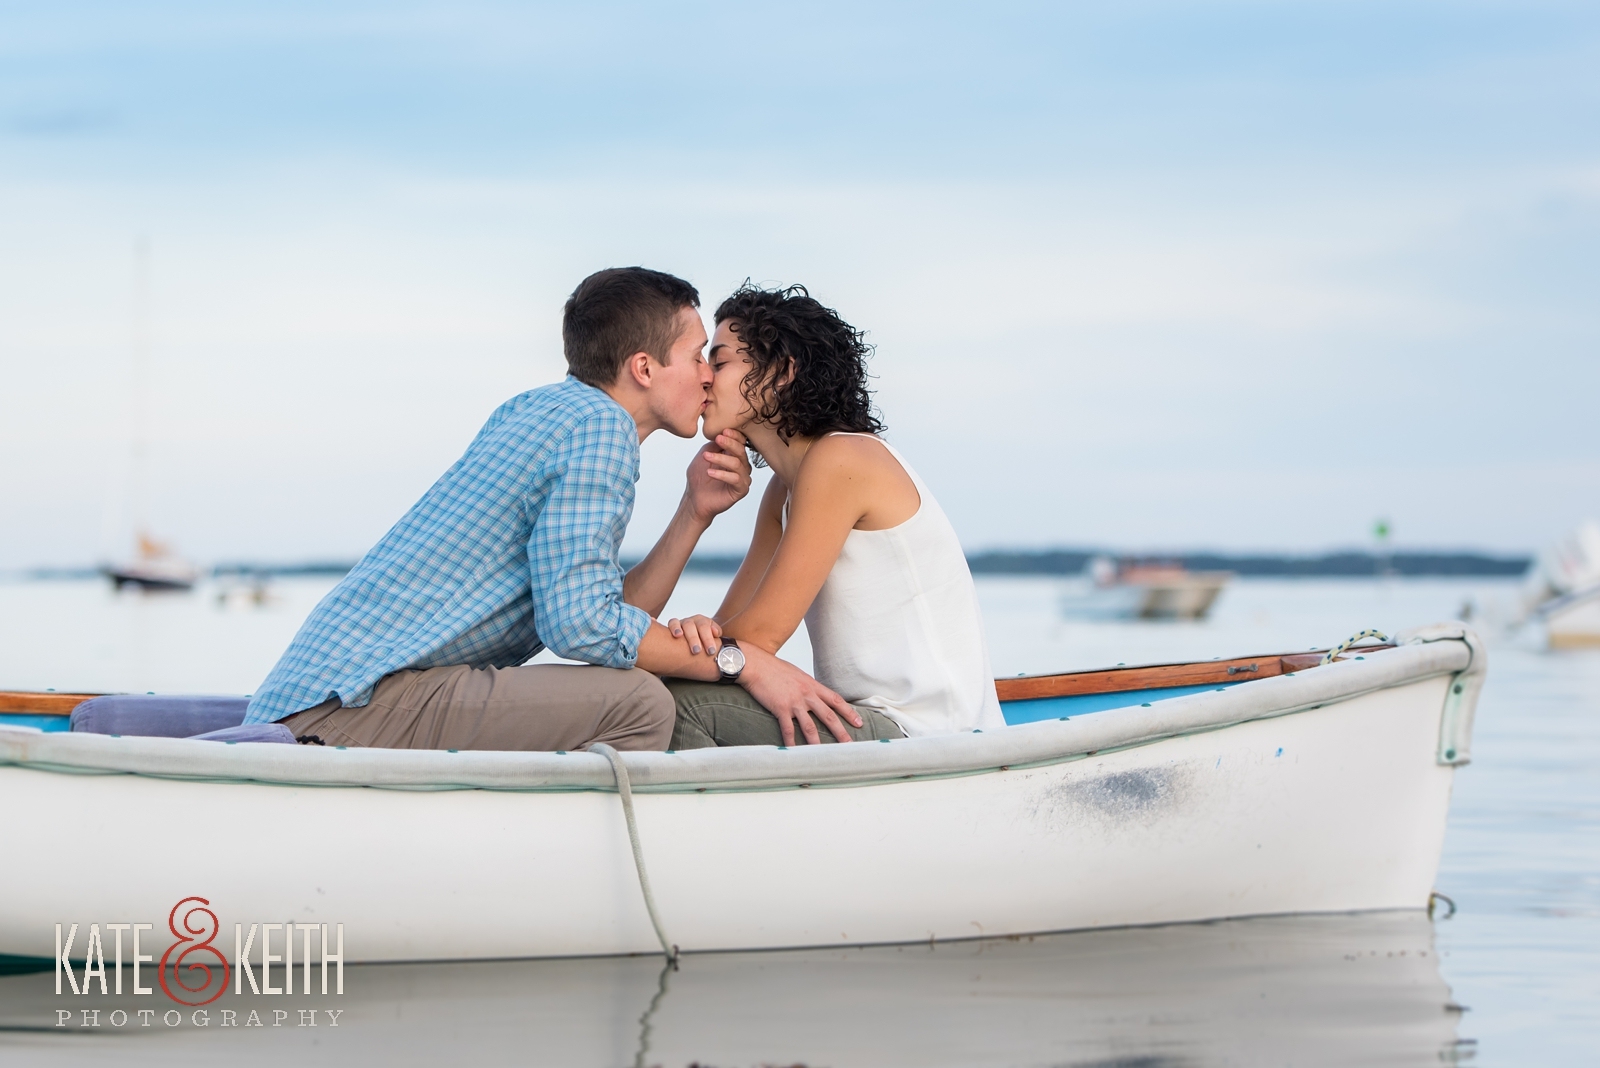 proposal photos,  boat, surprise proposal, proposal in Acadia National Park, Southwest Harbor, Mount Desert Island, seaside, sunset proposal, engagement, getting engaged in Acadia National Park, rowboat,engagement photos, coastal Maine, New England, sailboats, dock, waterfront engagement